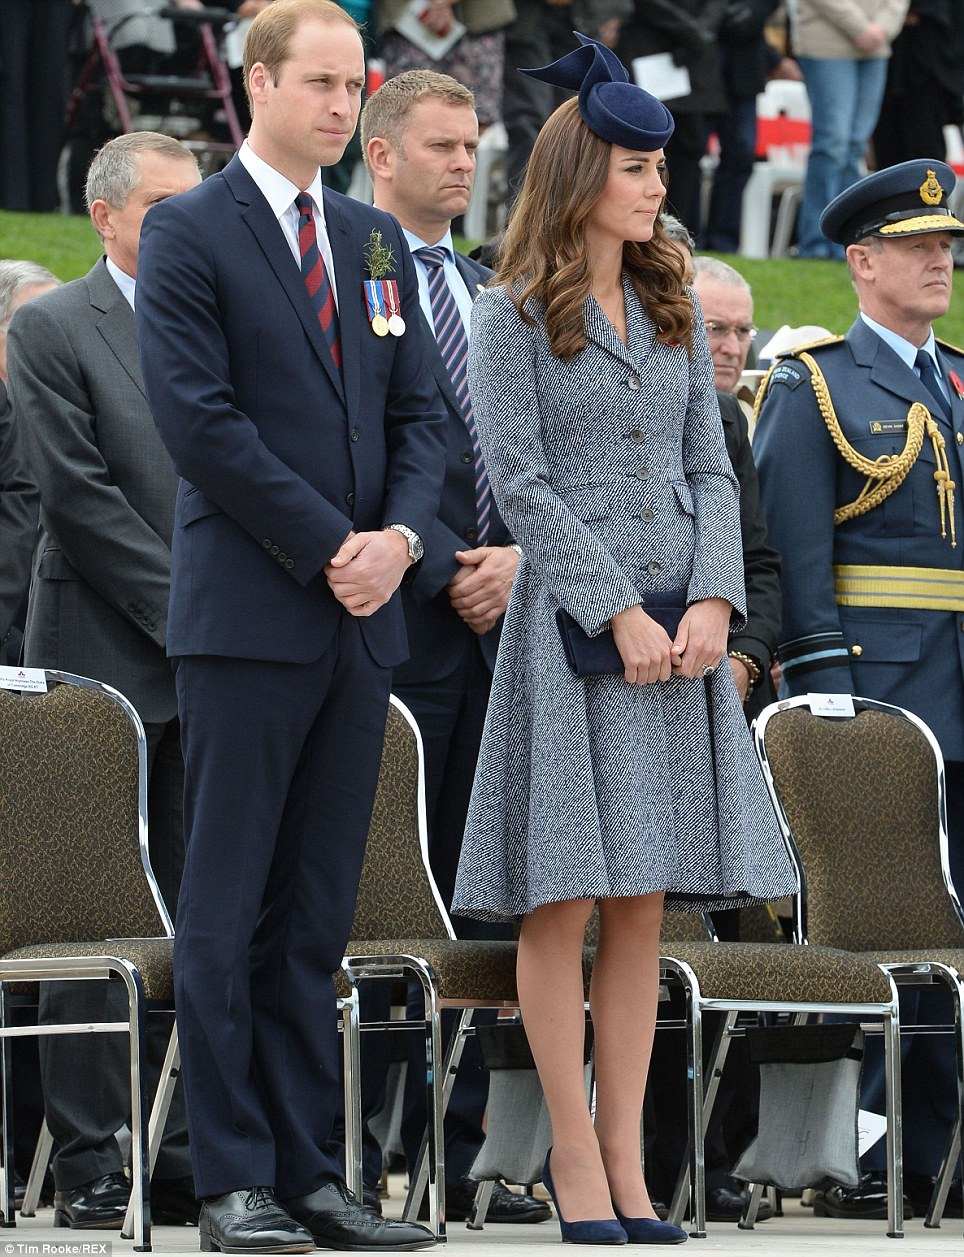 Respectful: William and Kate stood for the arrival of Governor General Sir Peter Cosgrove and wife Lynne Cosgrove, who stepped from their car as the Australian national anthem was played